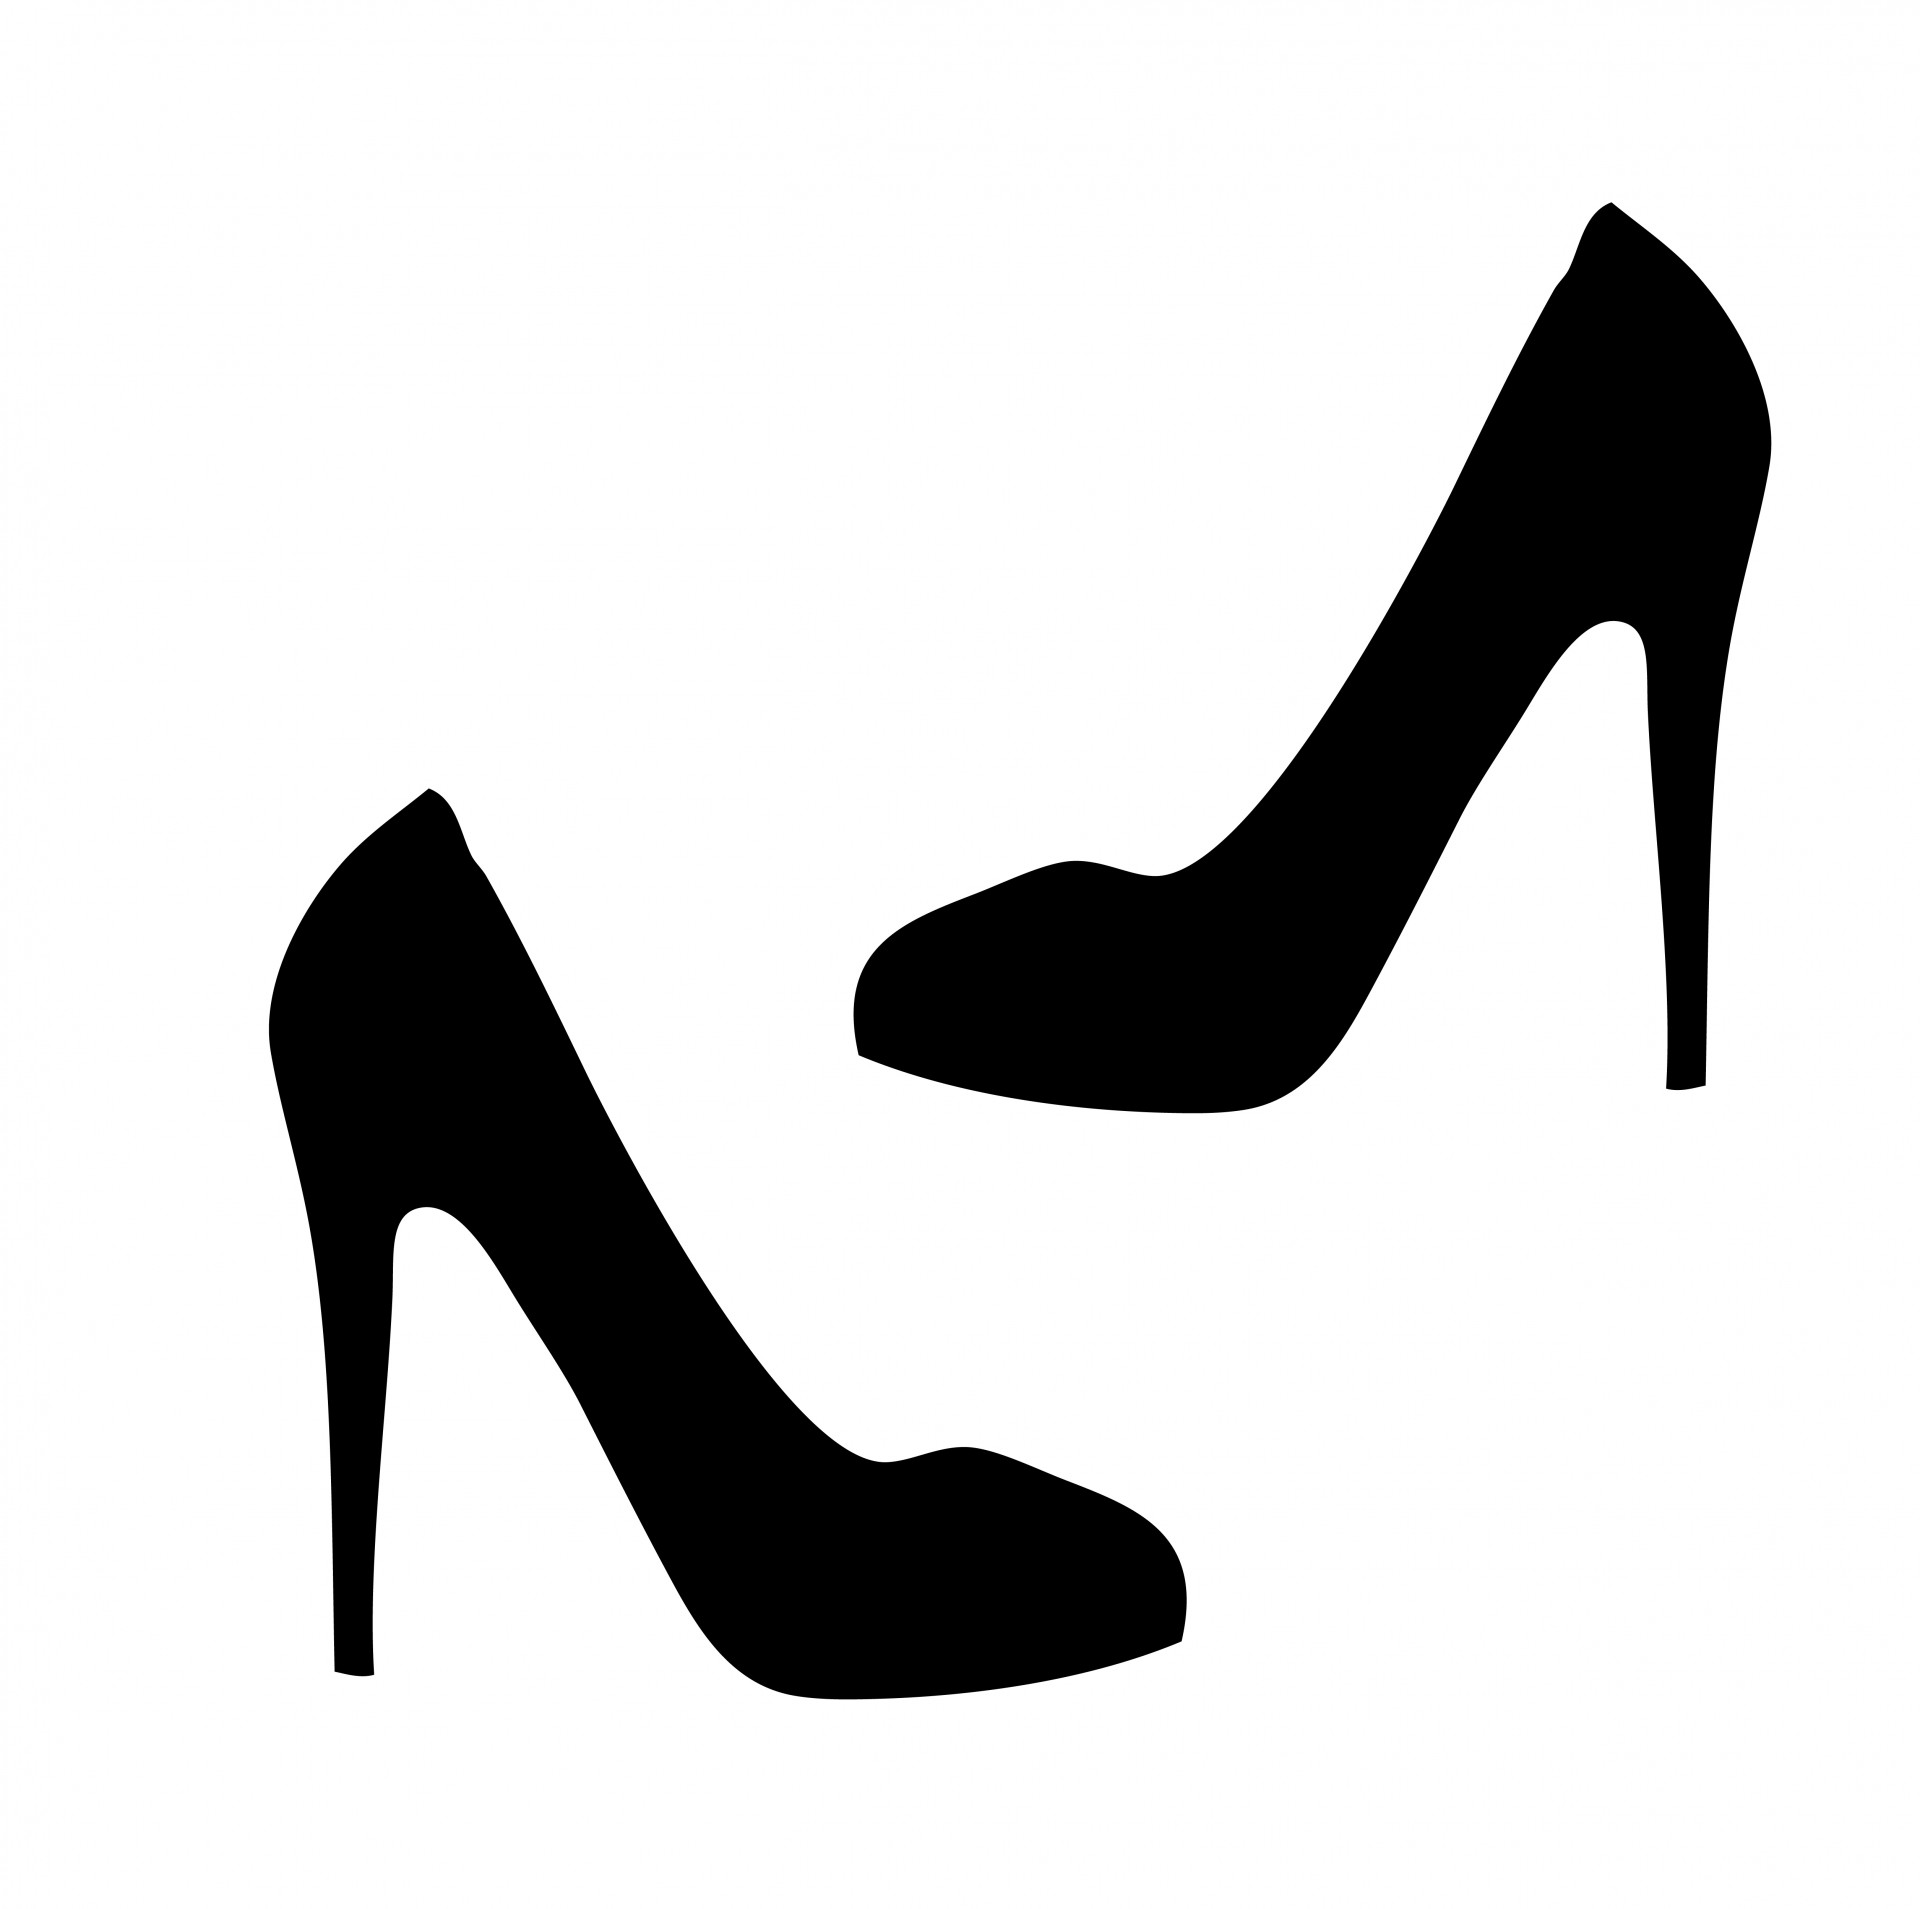 High Heel Silhouette at GetDrawings.com.